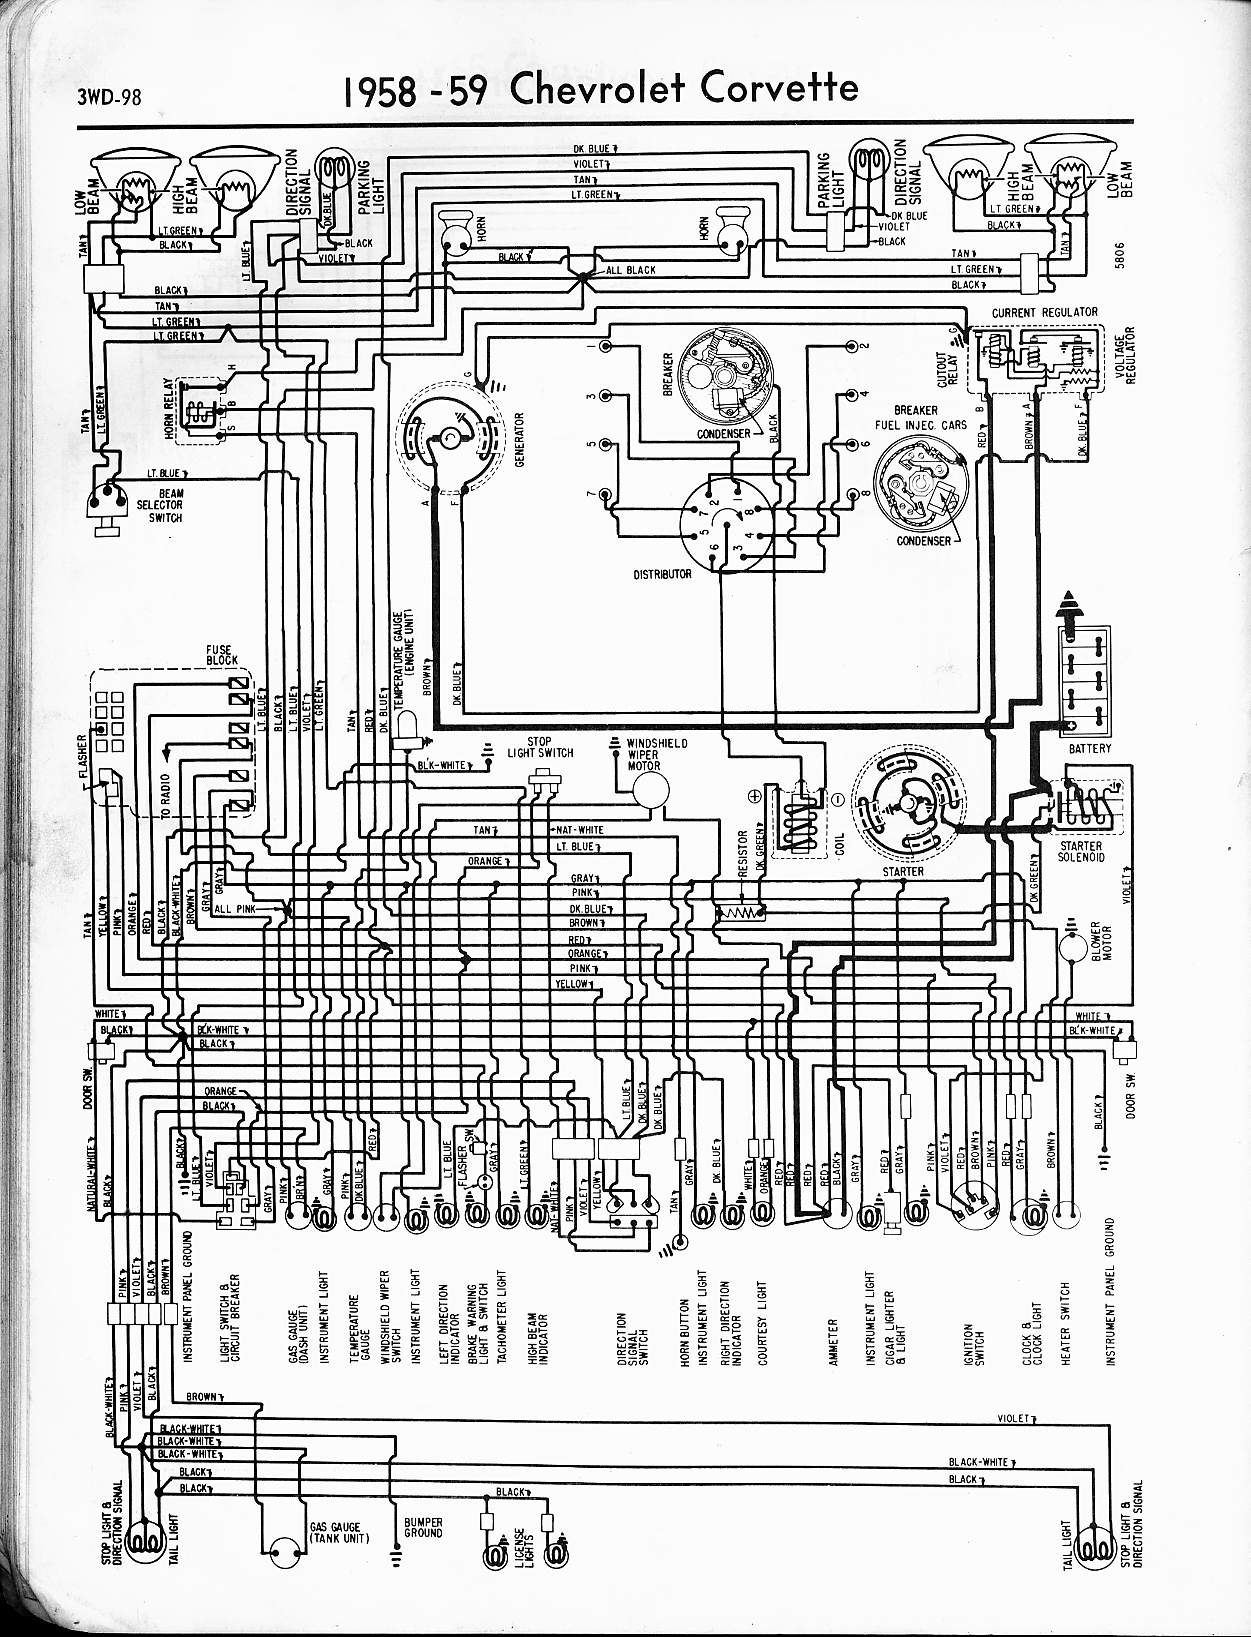 1959 Corvette Engine Diagram Detailed Wiring Diagrams 2008 Third Level 1975